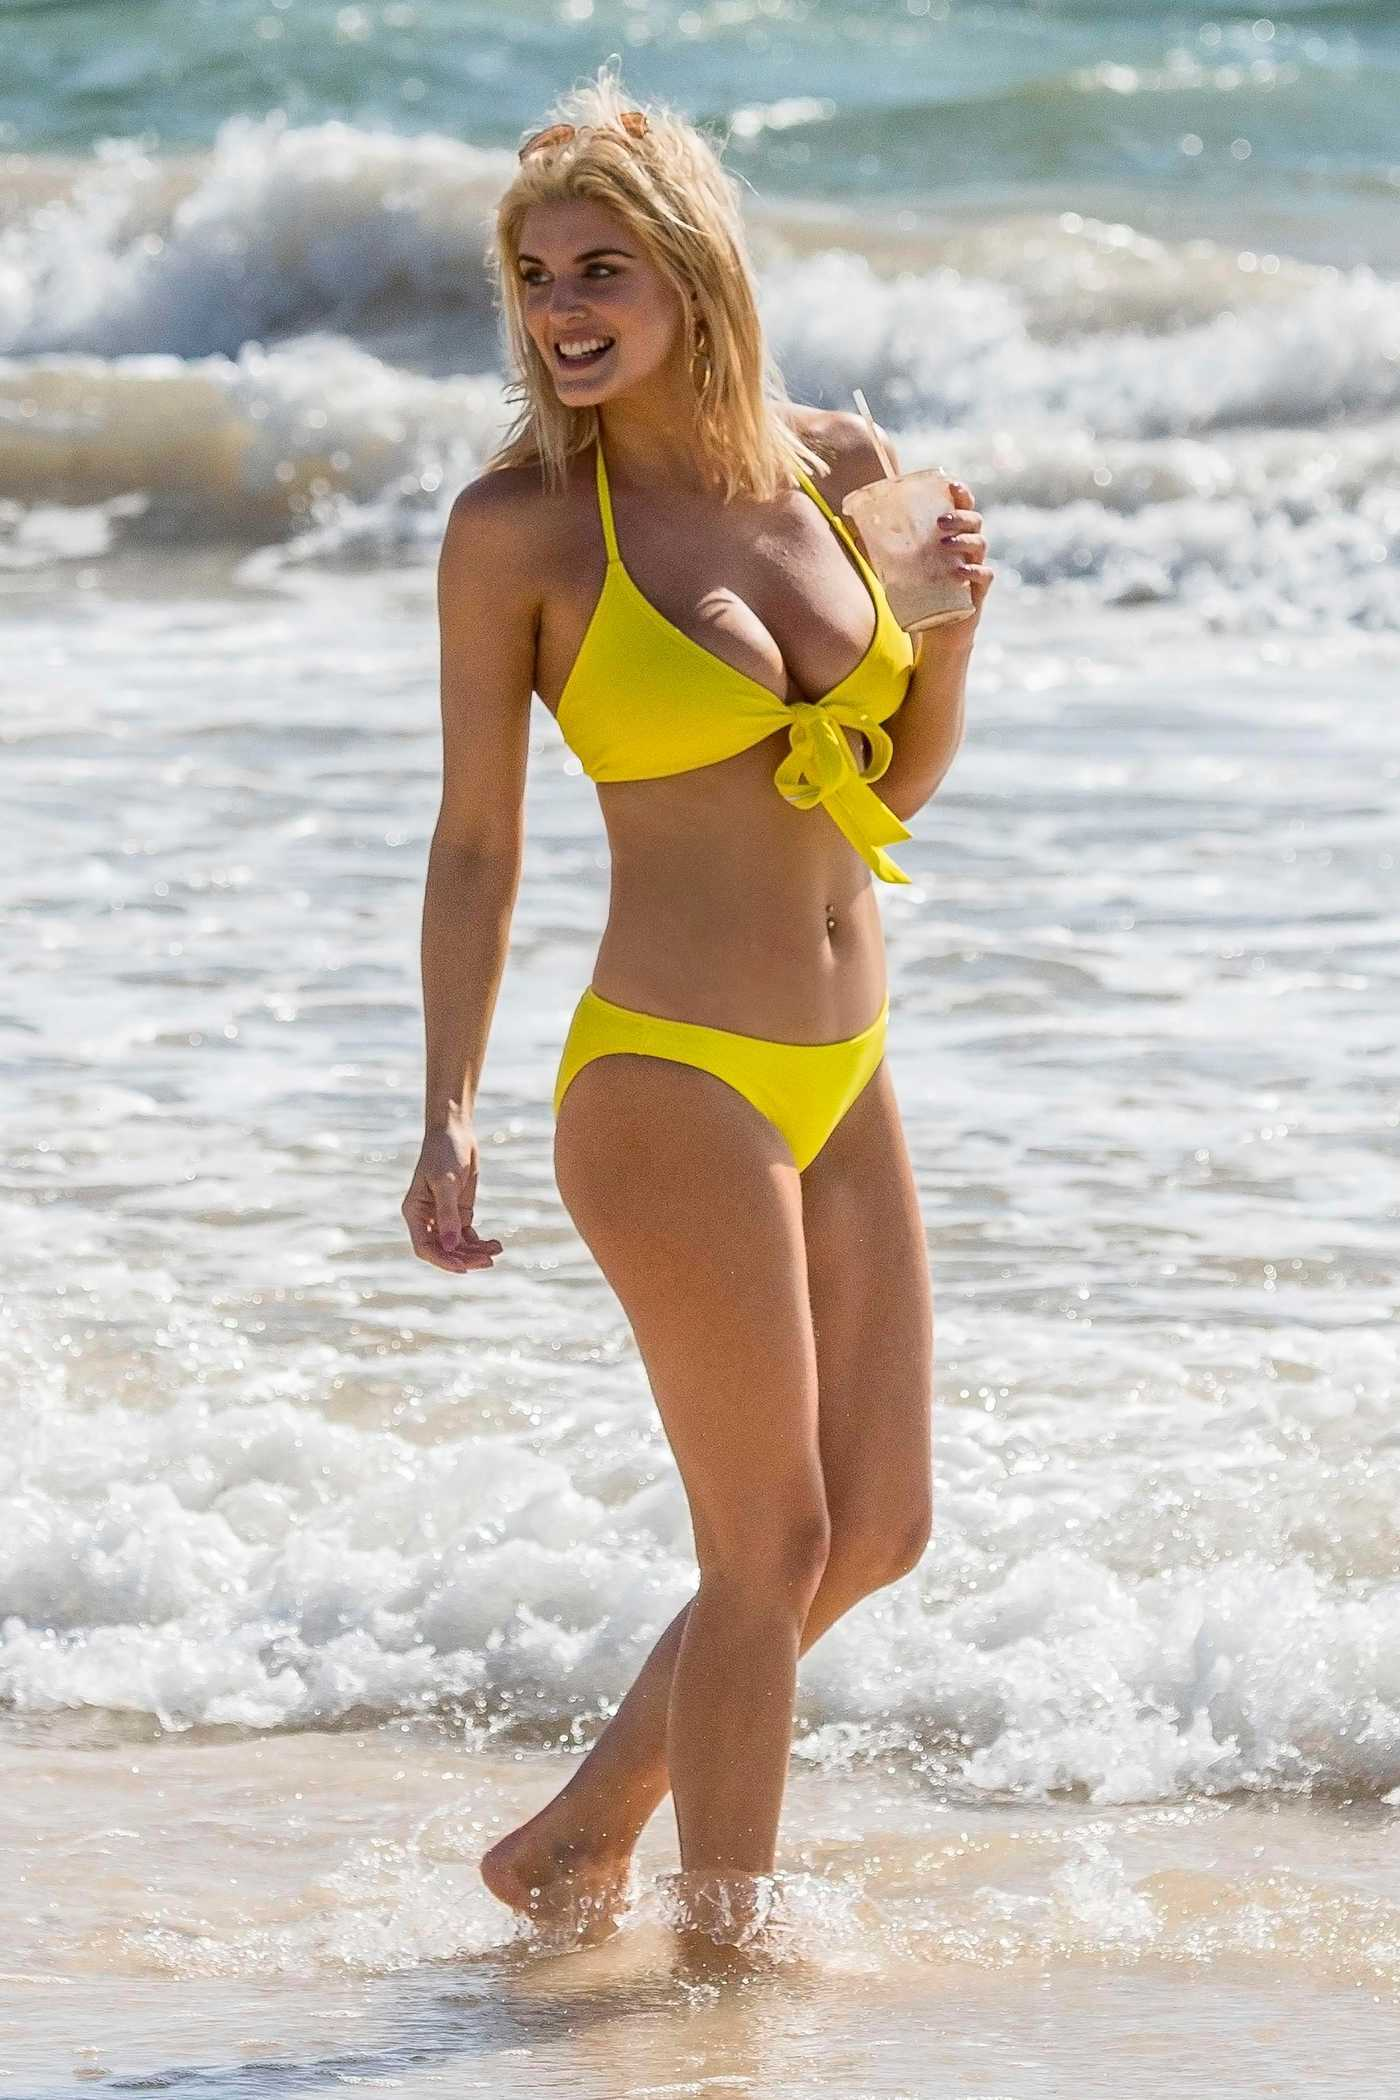 Ashley James Wears a Yellow Bikini on the Beach in Tulum 03/30/2018